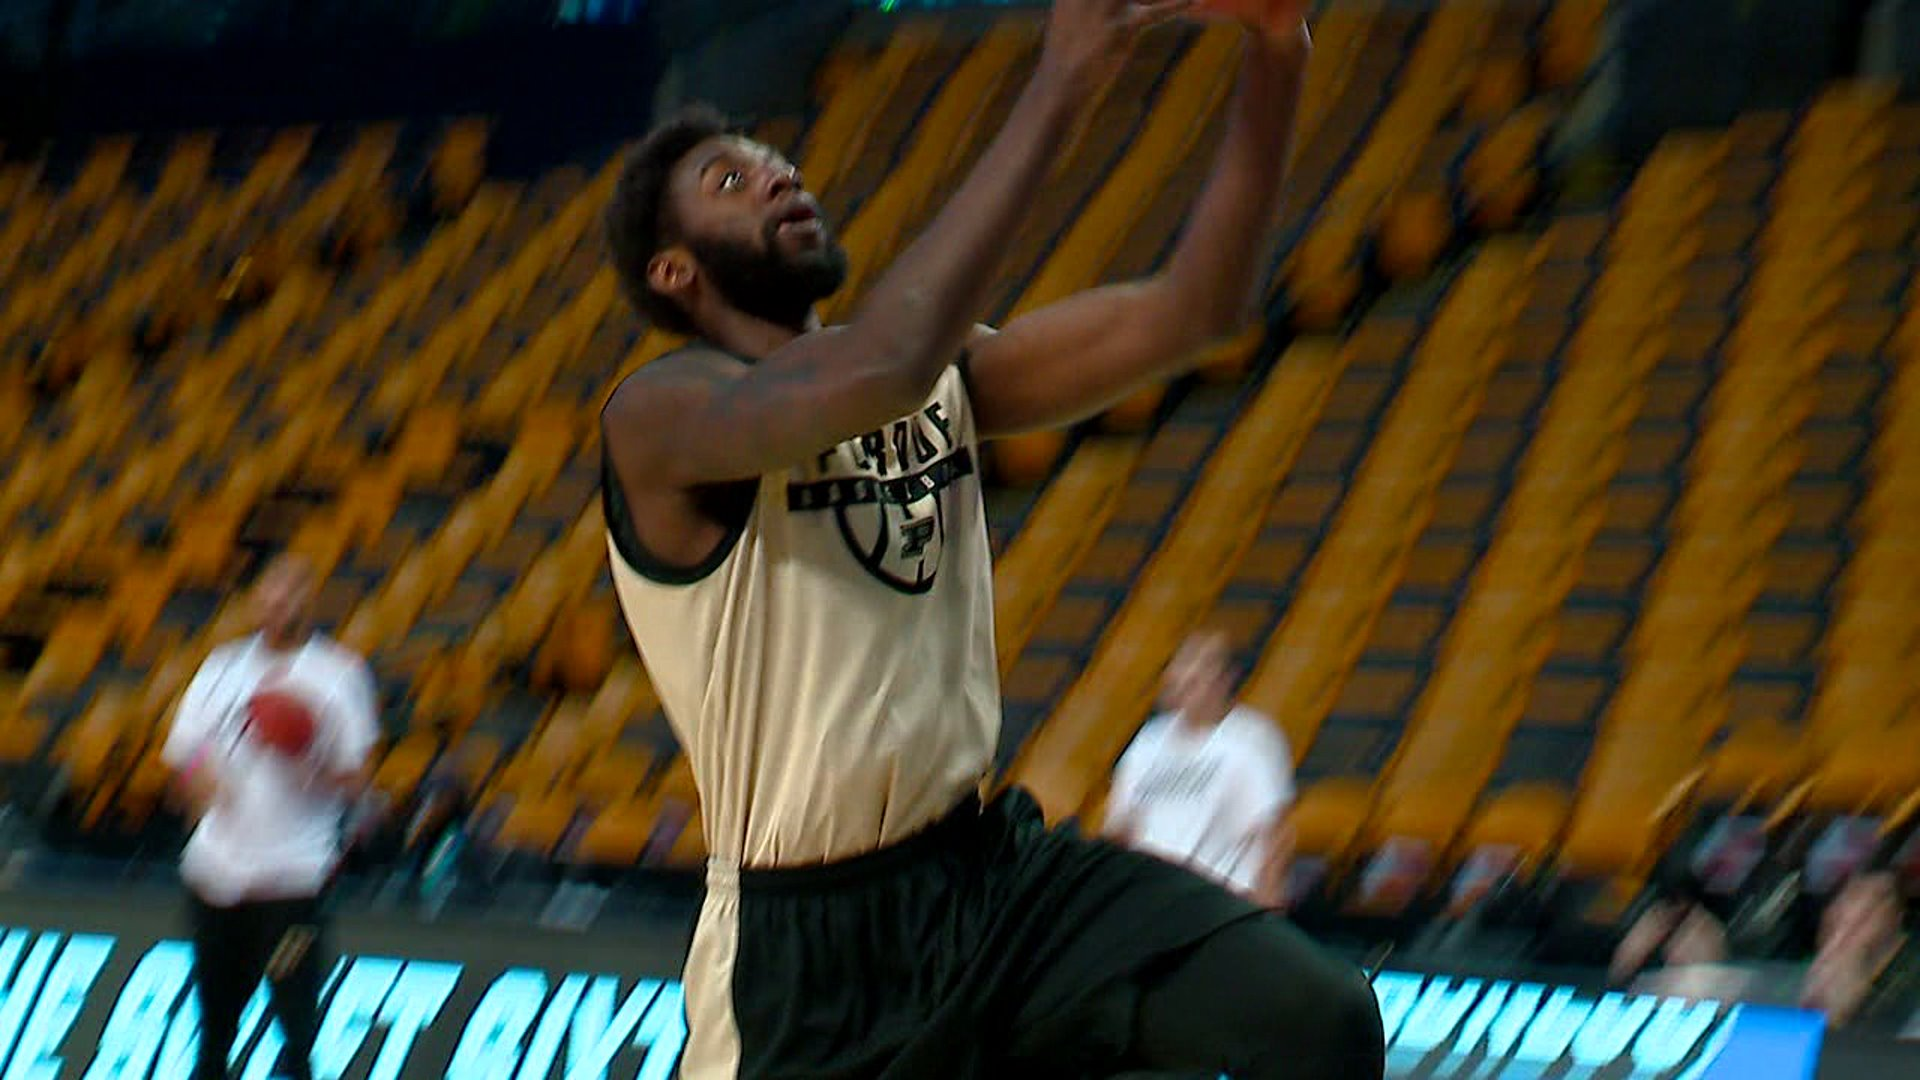 Purdue's Taylor looks to contribute in Boston homecoming | Fox 59